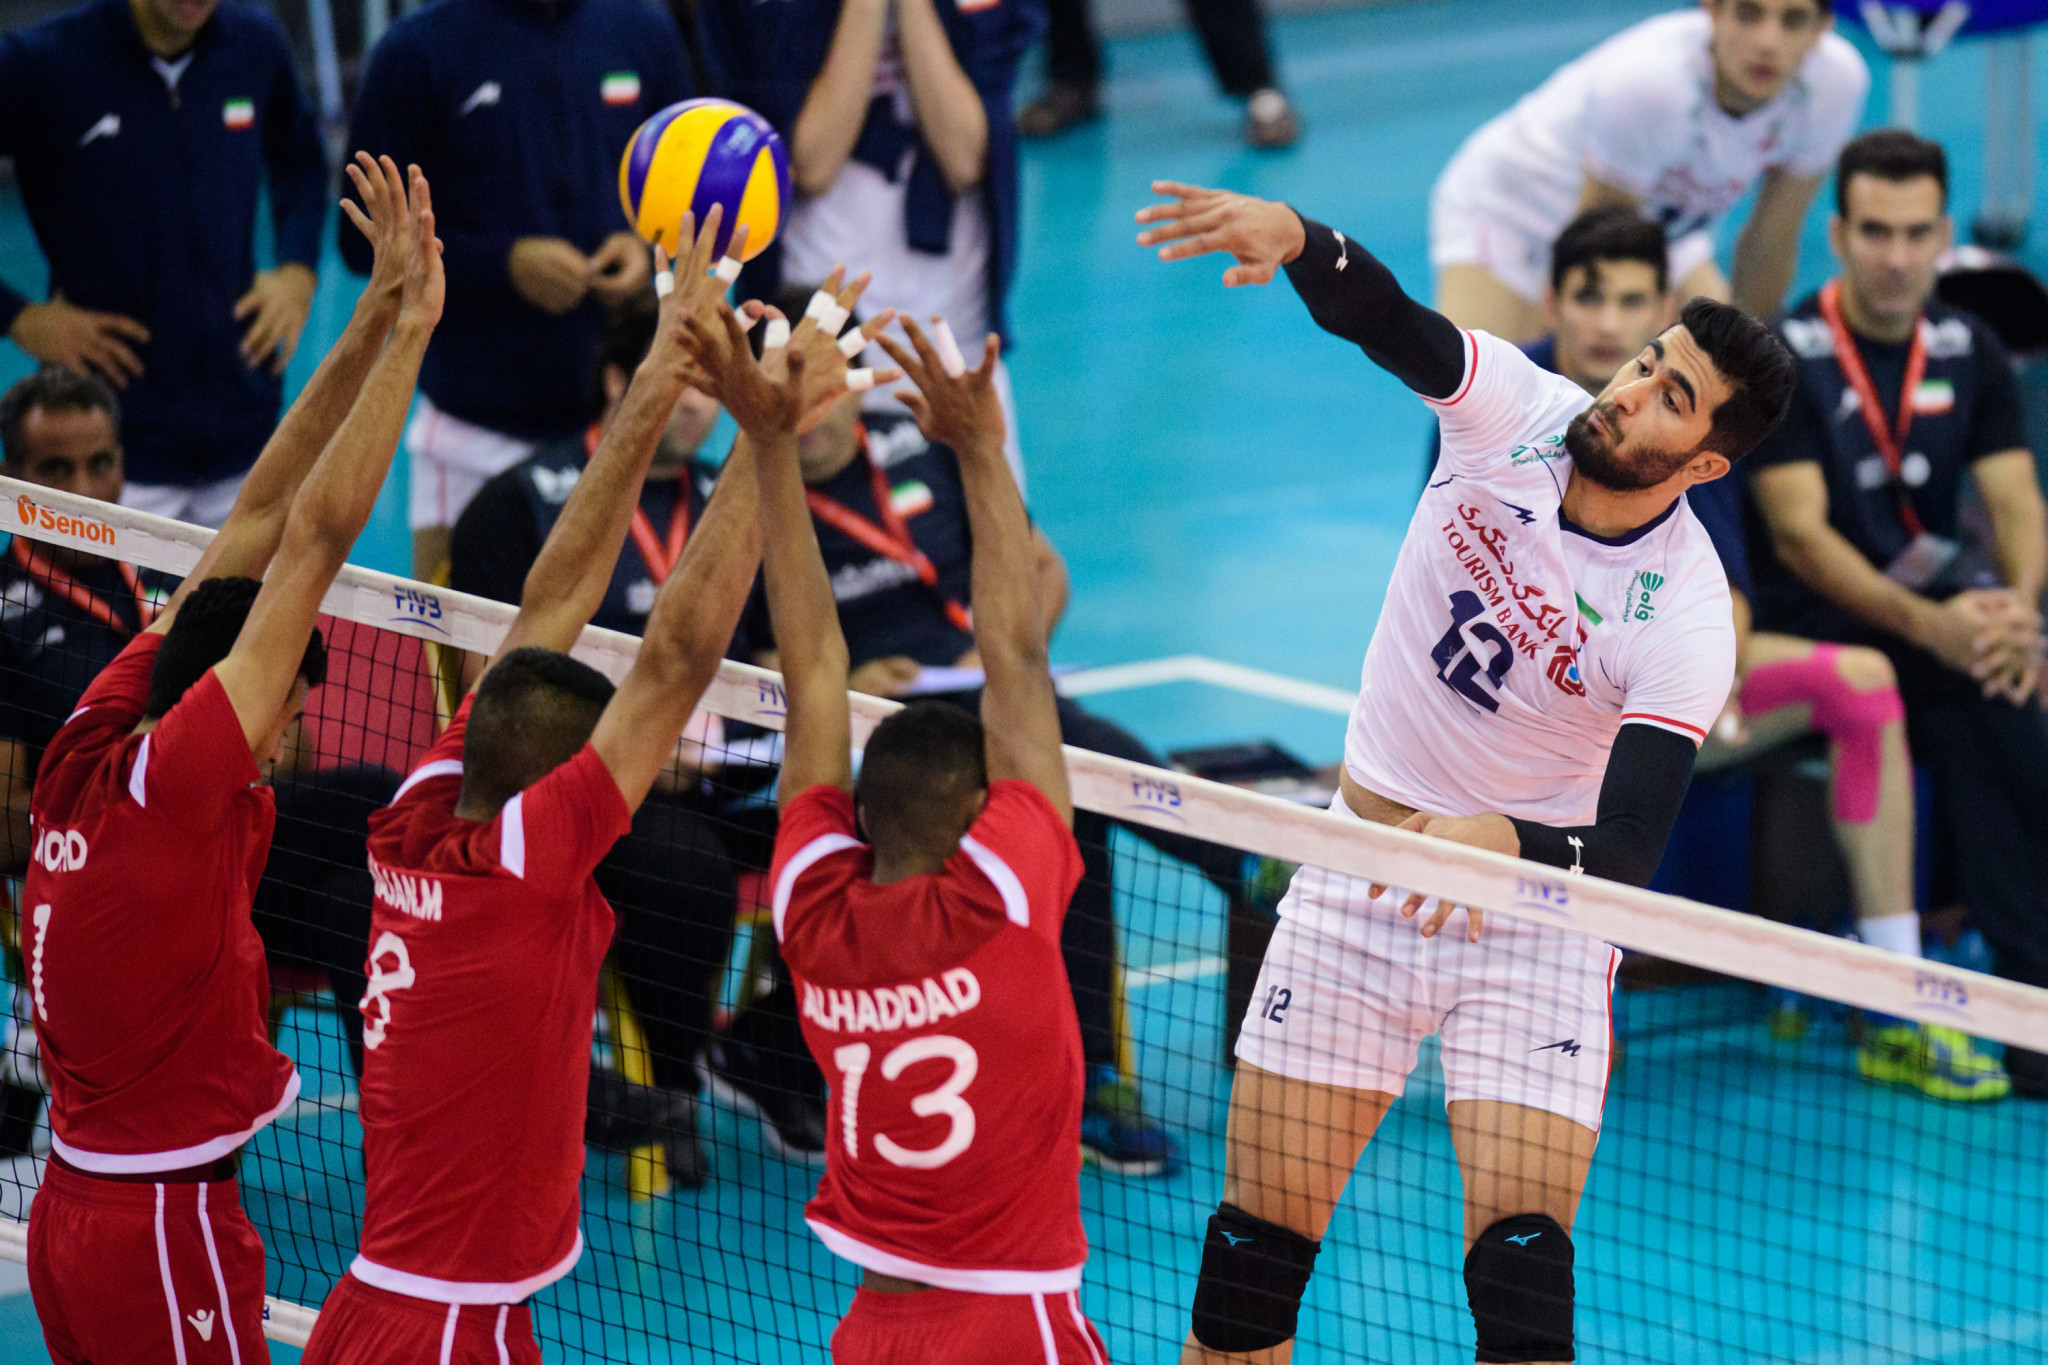 Iran beat Brazil in Bahrain to earn first final appearance in FIVB Men's Under-21 World Championship